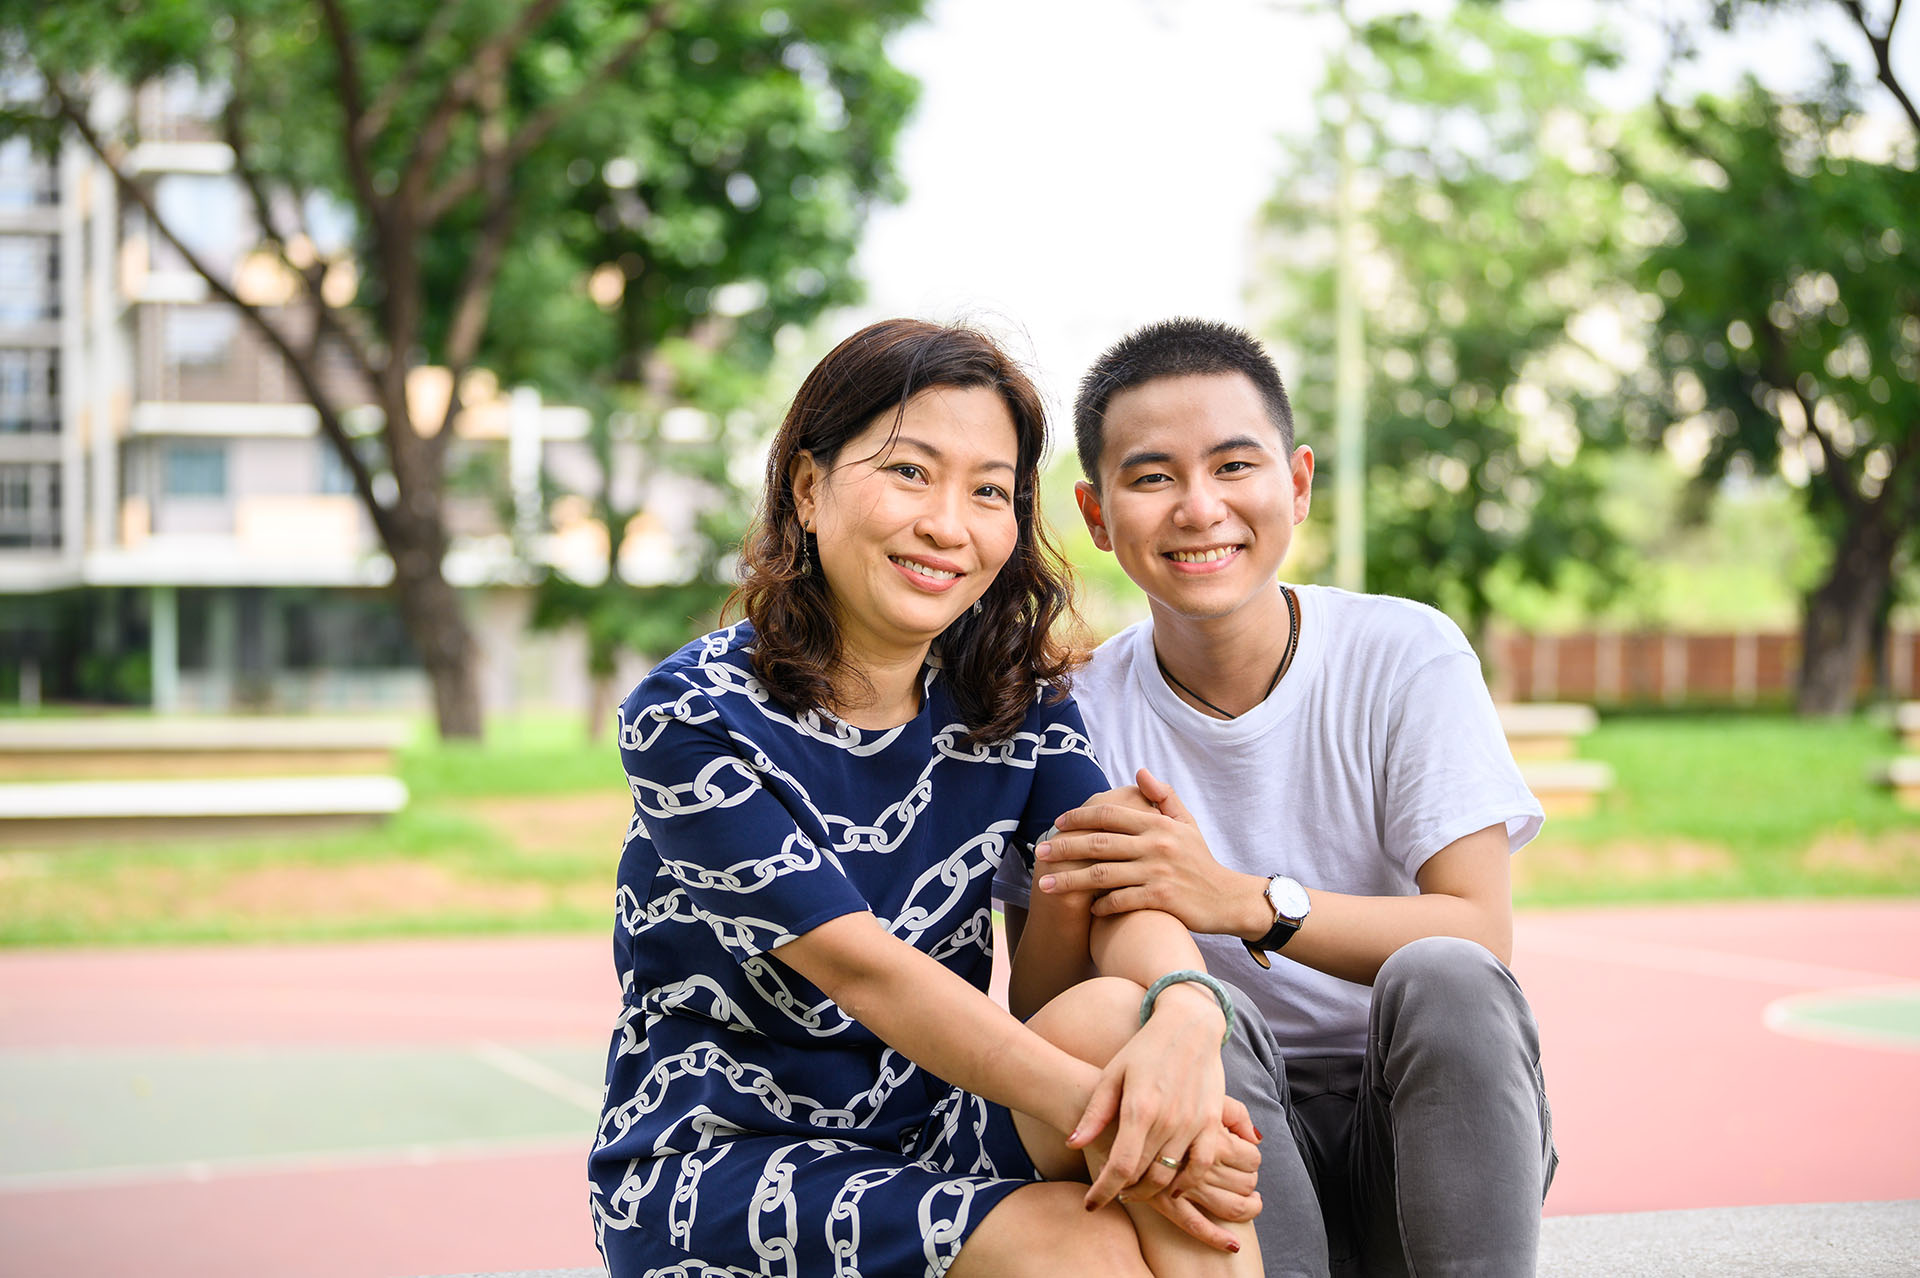 Vietnamese parent and child smiling